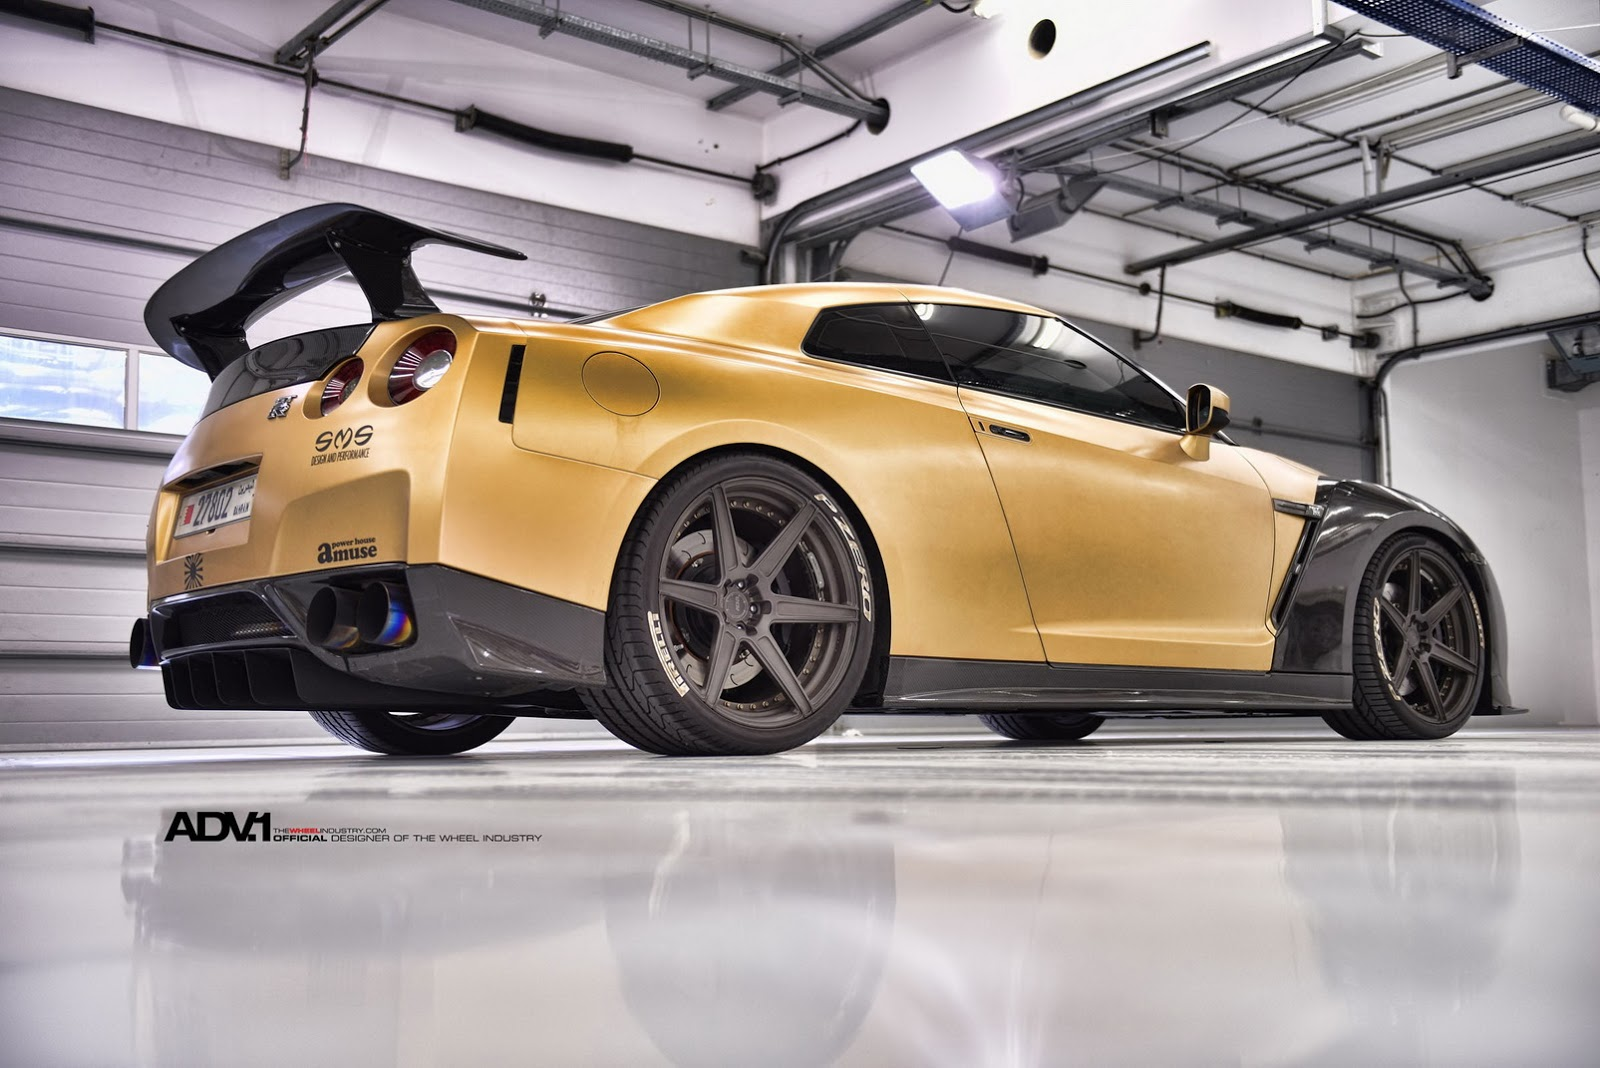 Nissan Tuning: Stunning ADV1 Carbon & Gold Nissan GT-R